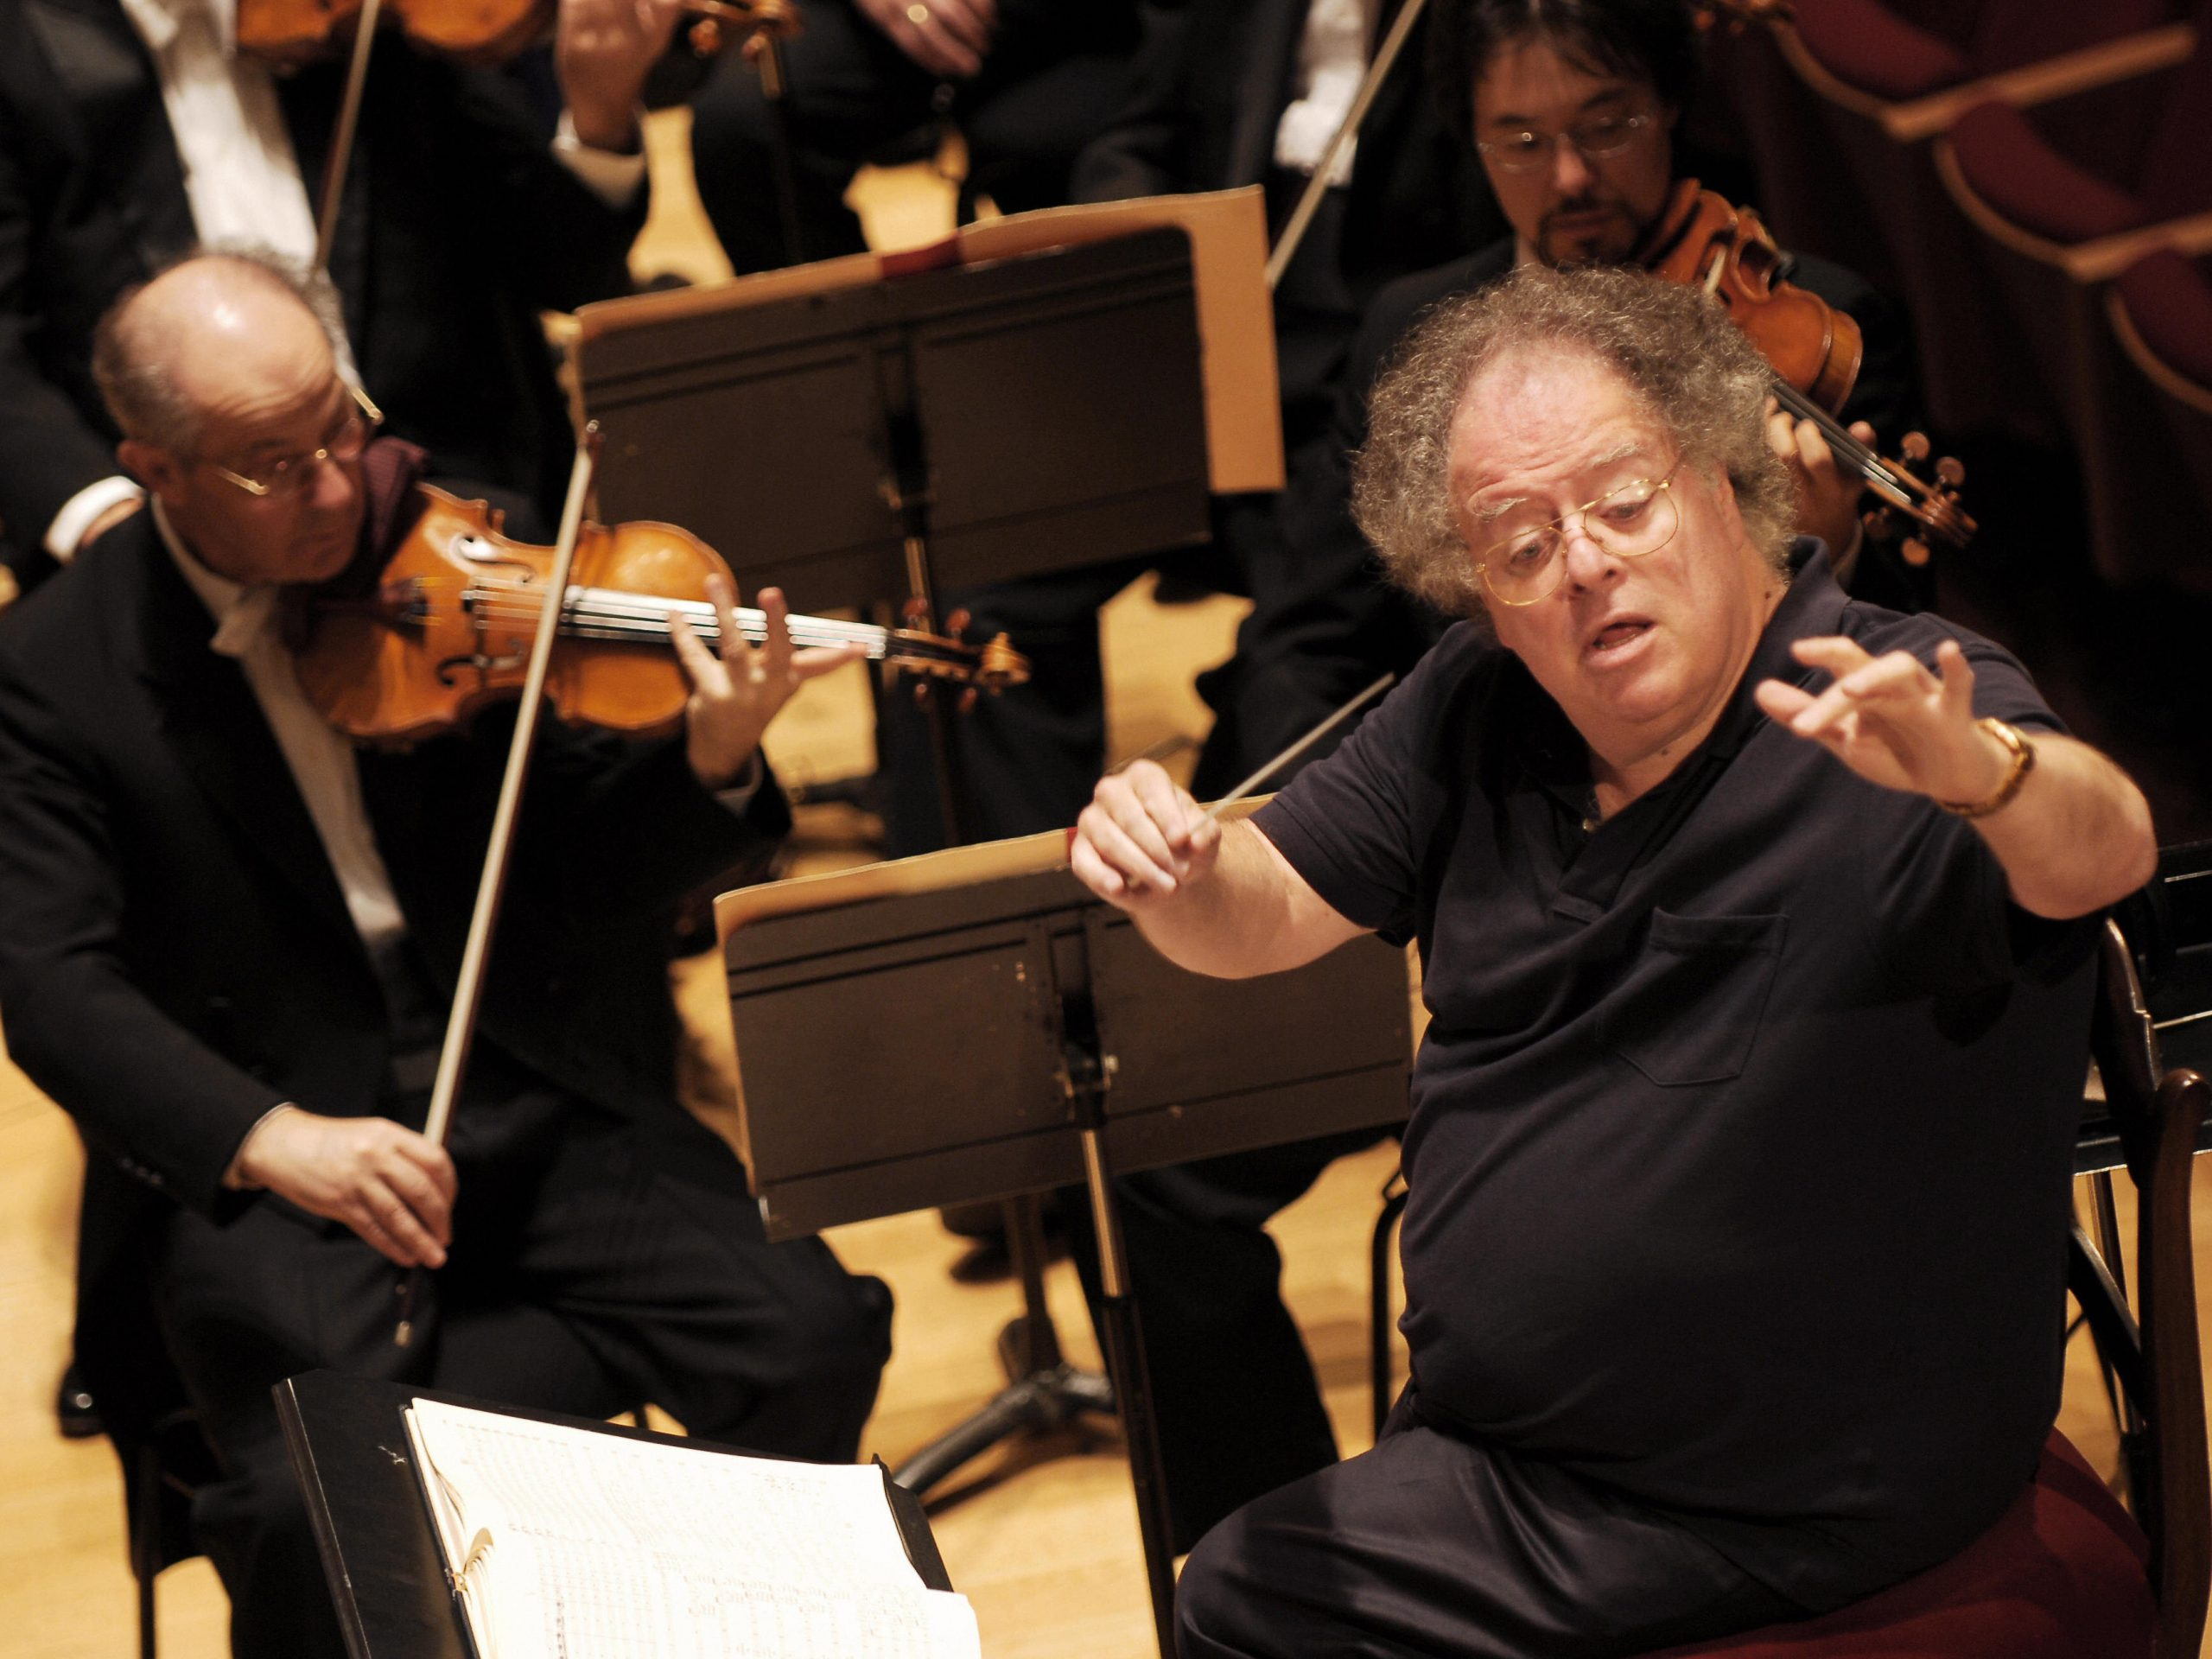 James Levine conducts the Boston Symphony Orchestra in 2007.